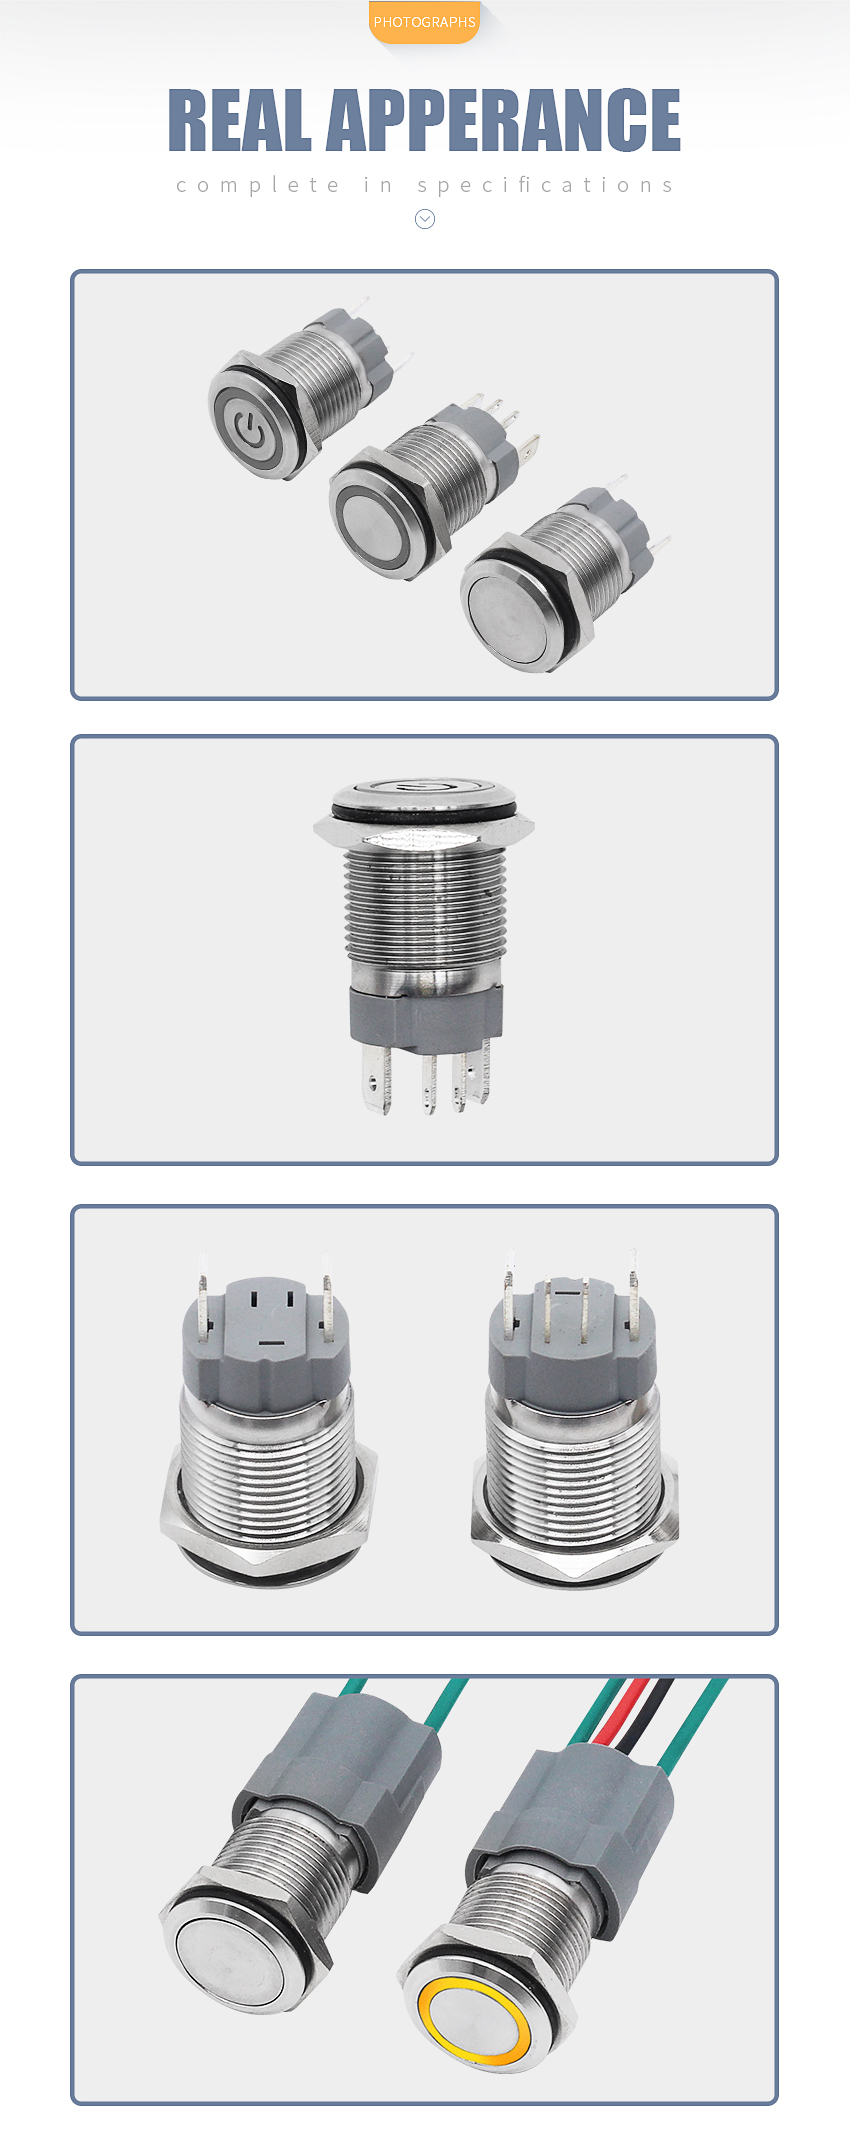 Hf9f1aeb491f641beb31bc425ad69f34au - 16mm High current 15A metal stainless steel button switch  pressing momentary switch self-recovery and self-locking 12V24V220V